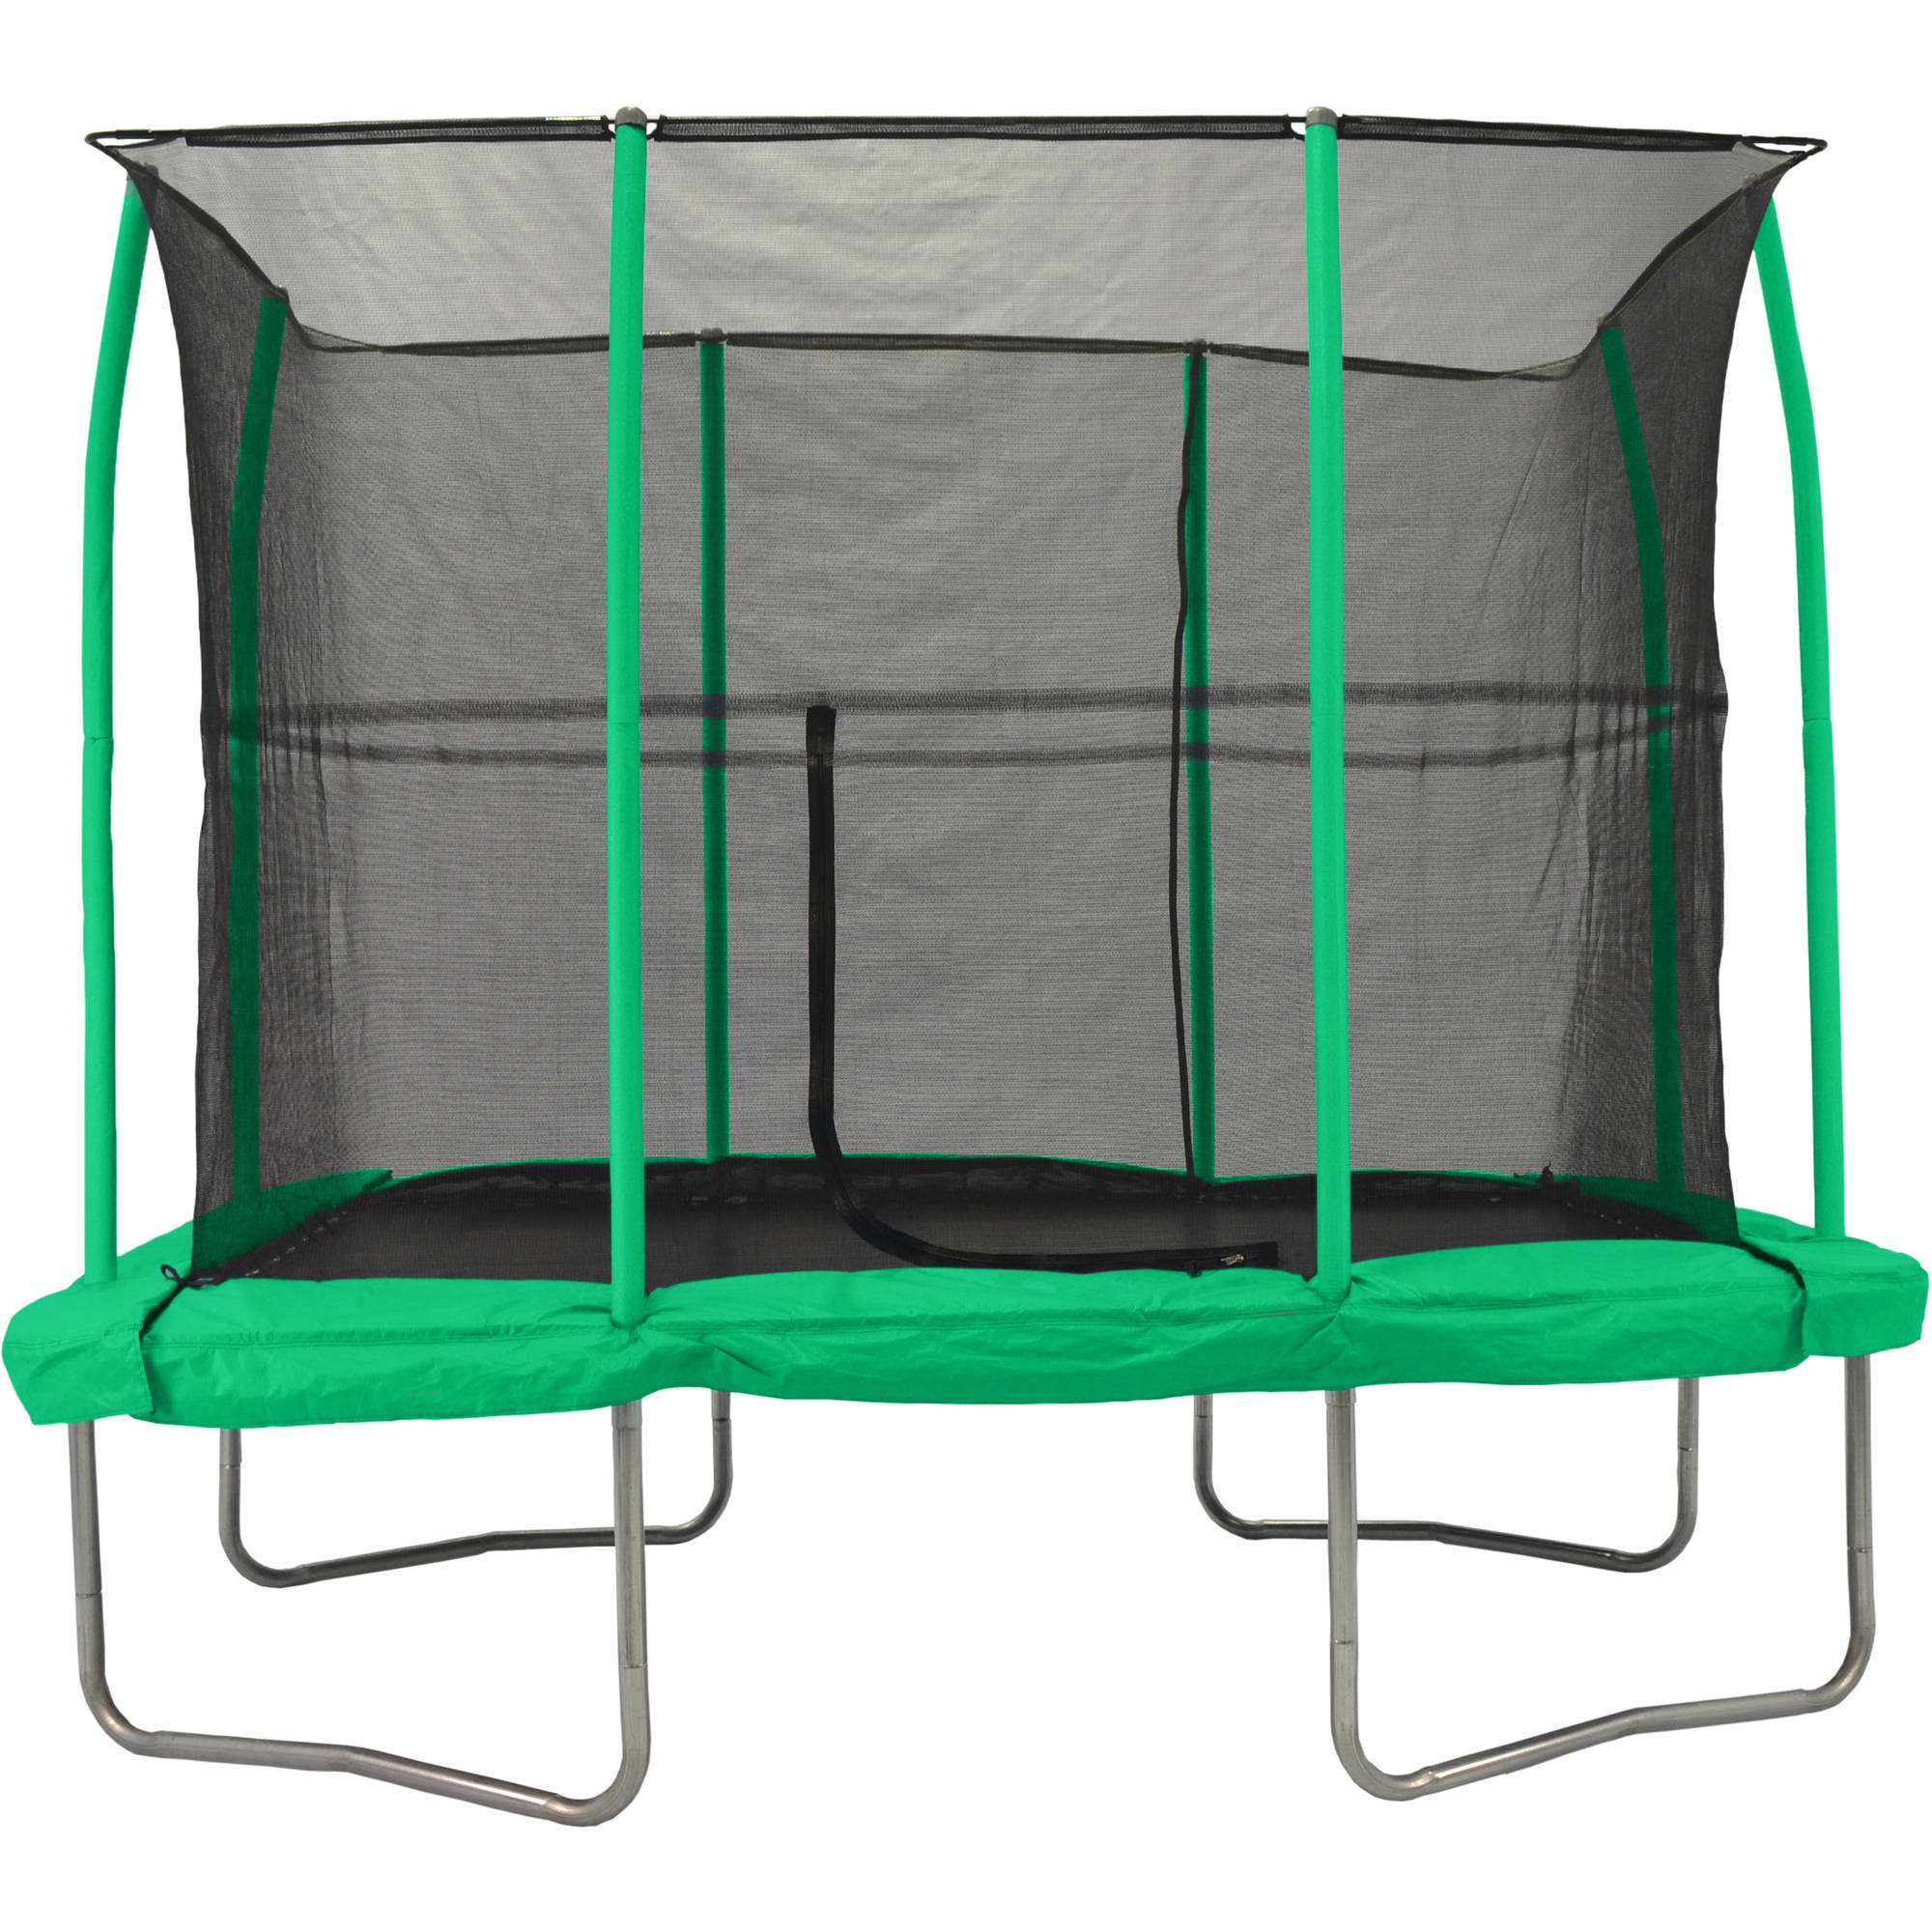 Jumpking 7 x 10 Foot Rectangular Trampoline, with Safety Enclosure, Blue by Jump King